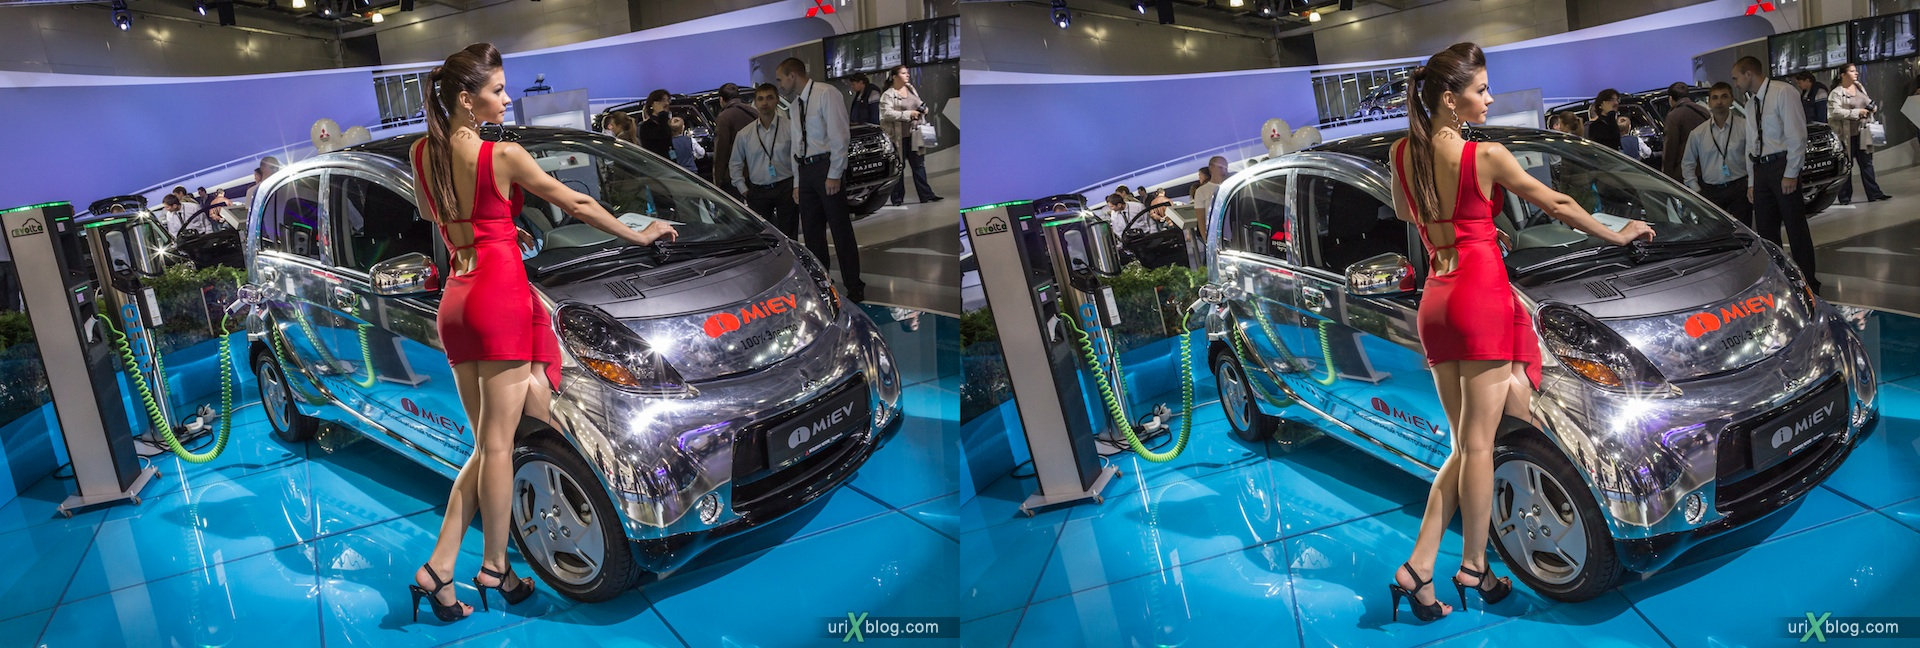 2012, i-Miev electro, girl, model, Moscow International Automobile Salon, auto show, 3D, stereo pair, cross-eyed, crossview